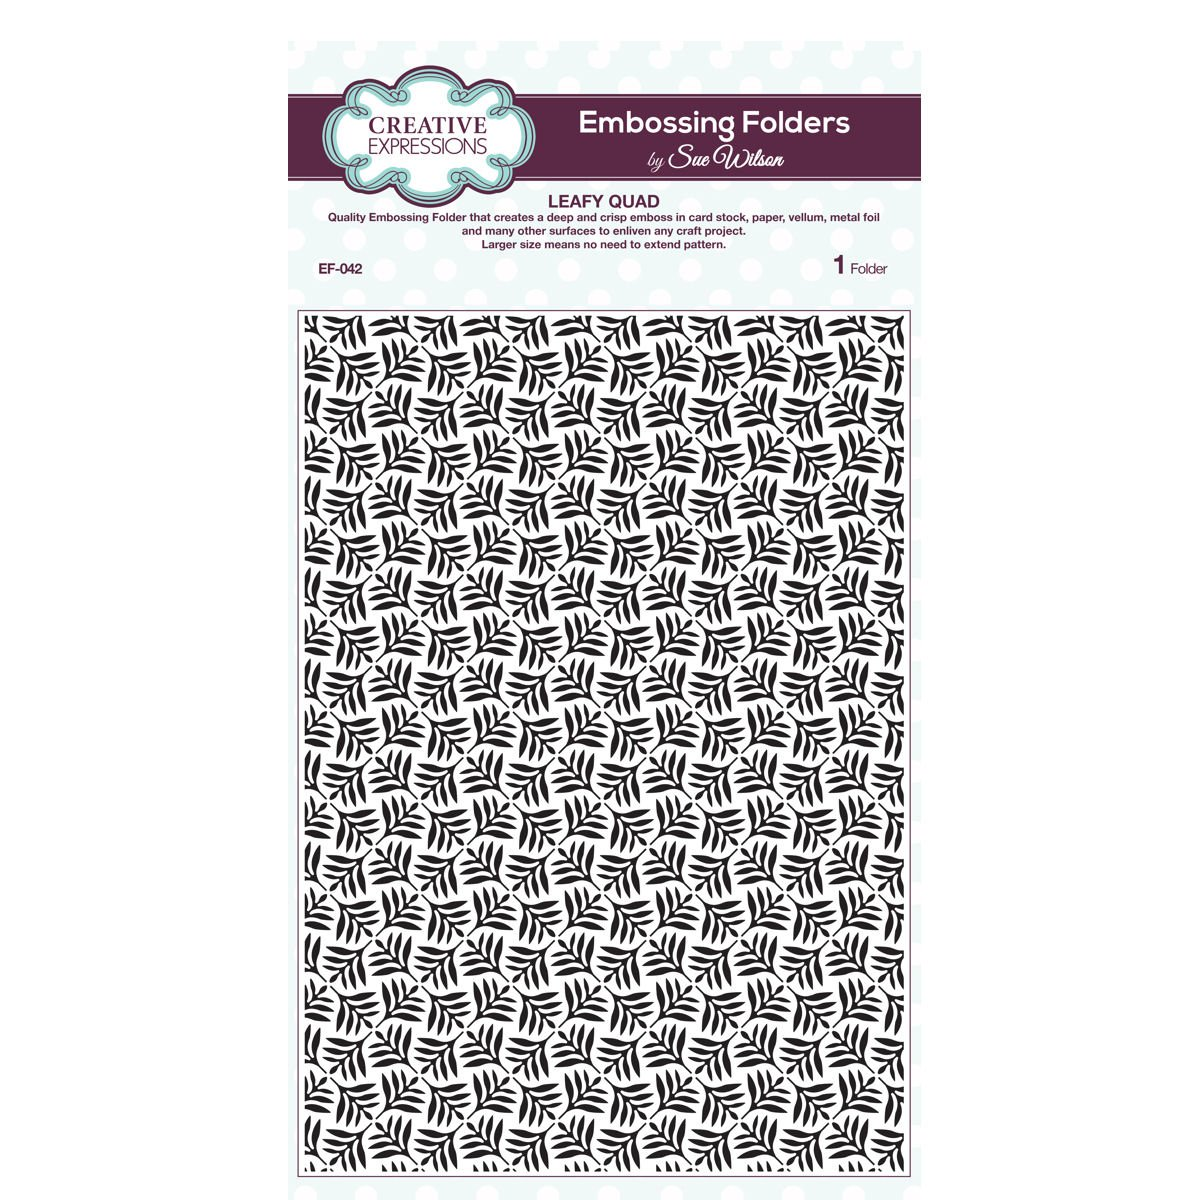 Creative Expressions EF-042 Sue Wilson Embossing Folder - Leafy Quad by Sue Wilson